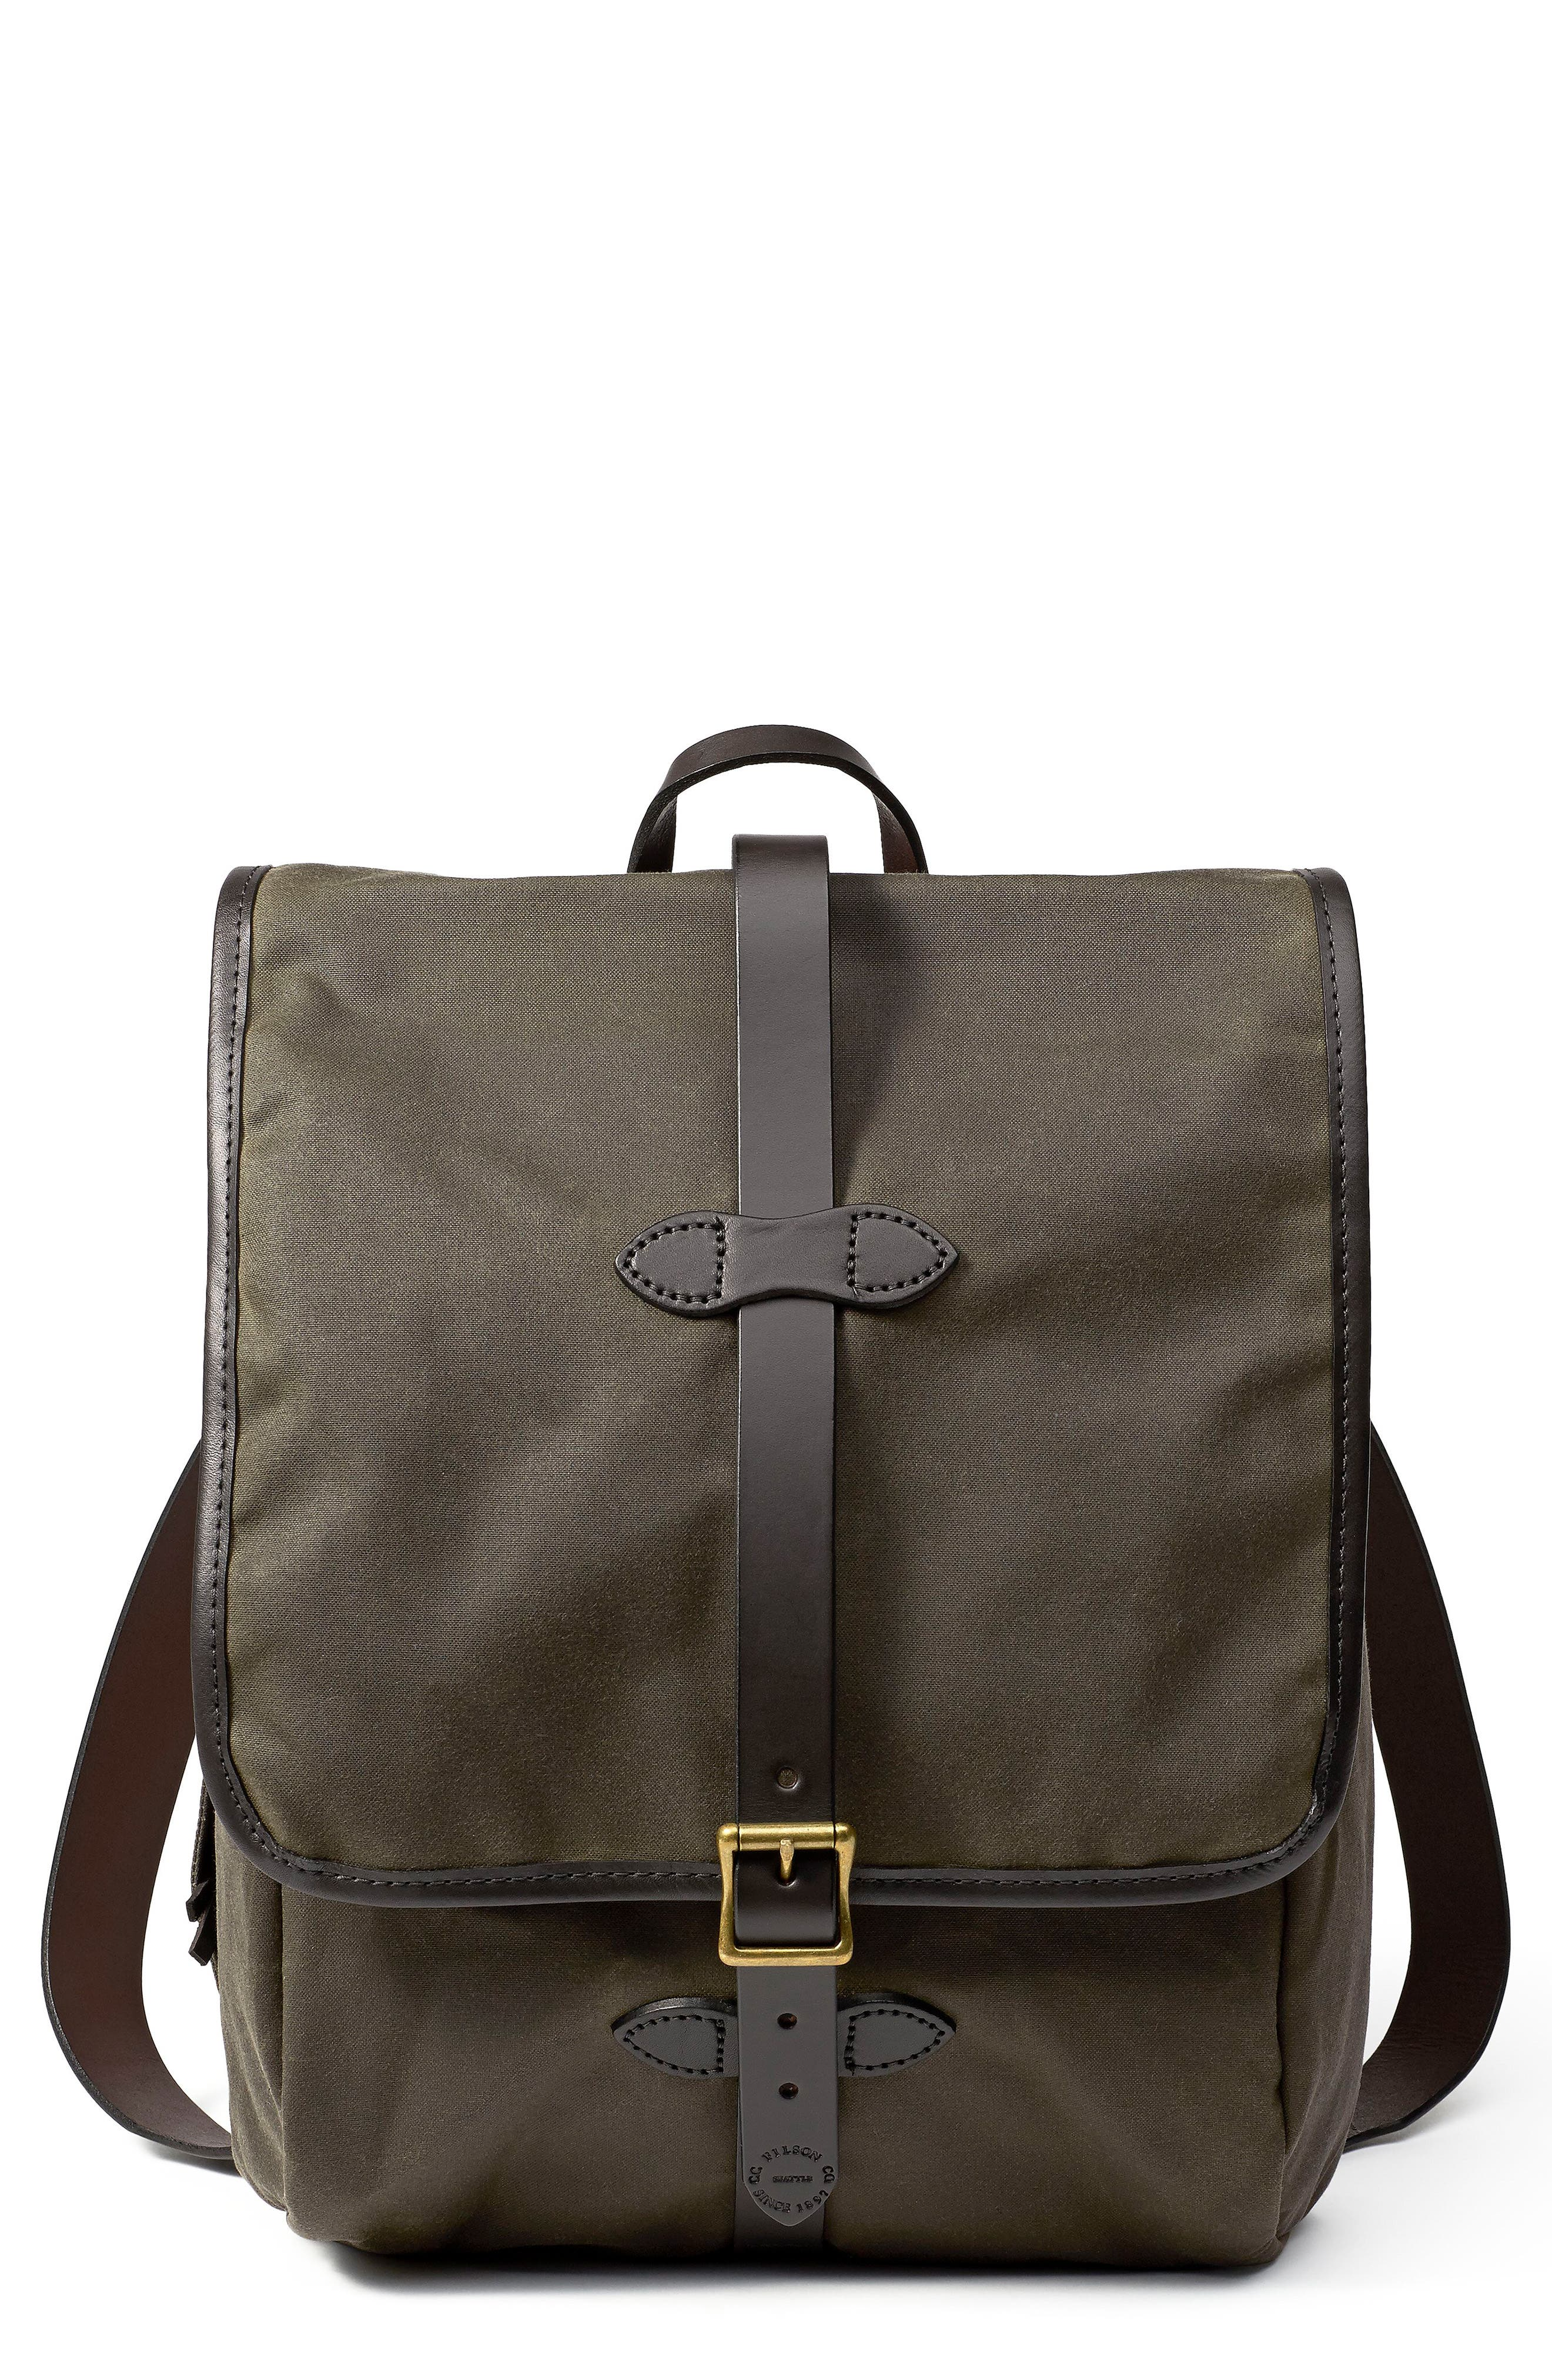 Tin Cloth Backpack,                         Main,                         color, Otter Green